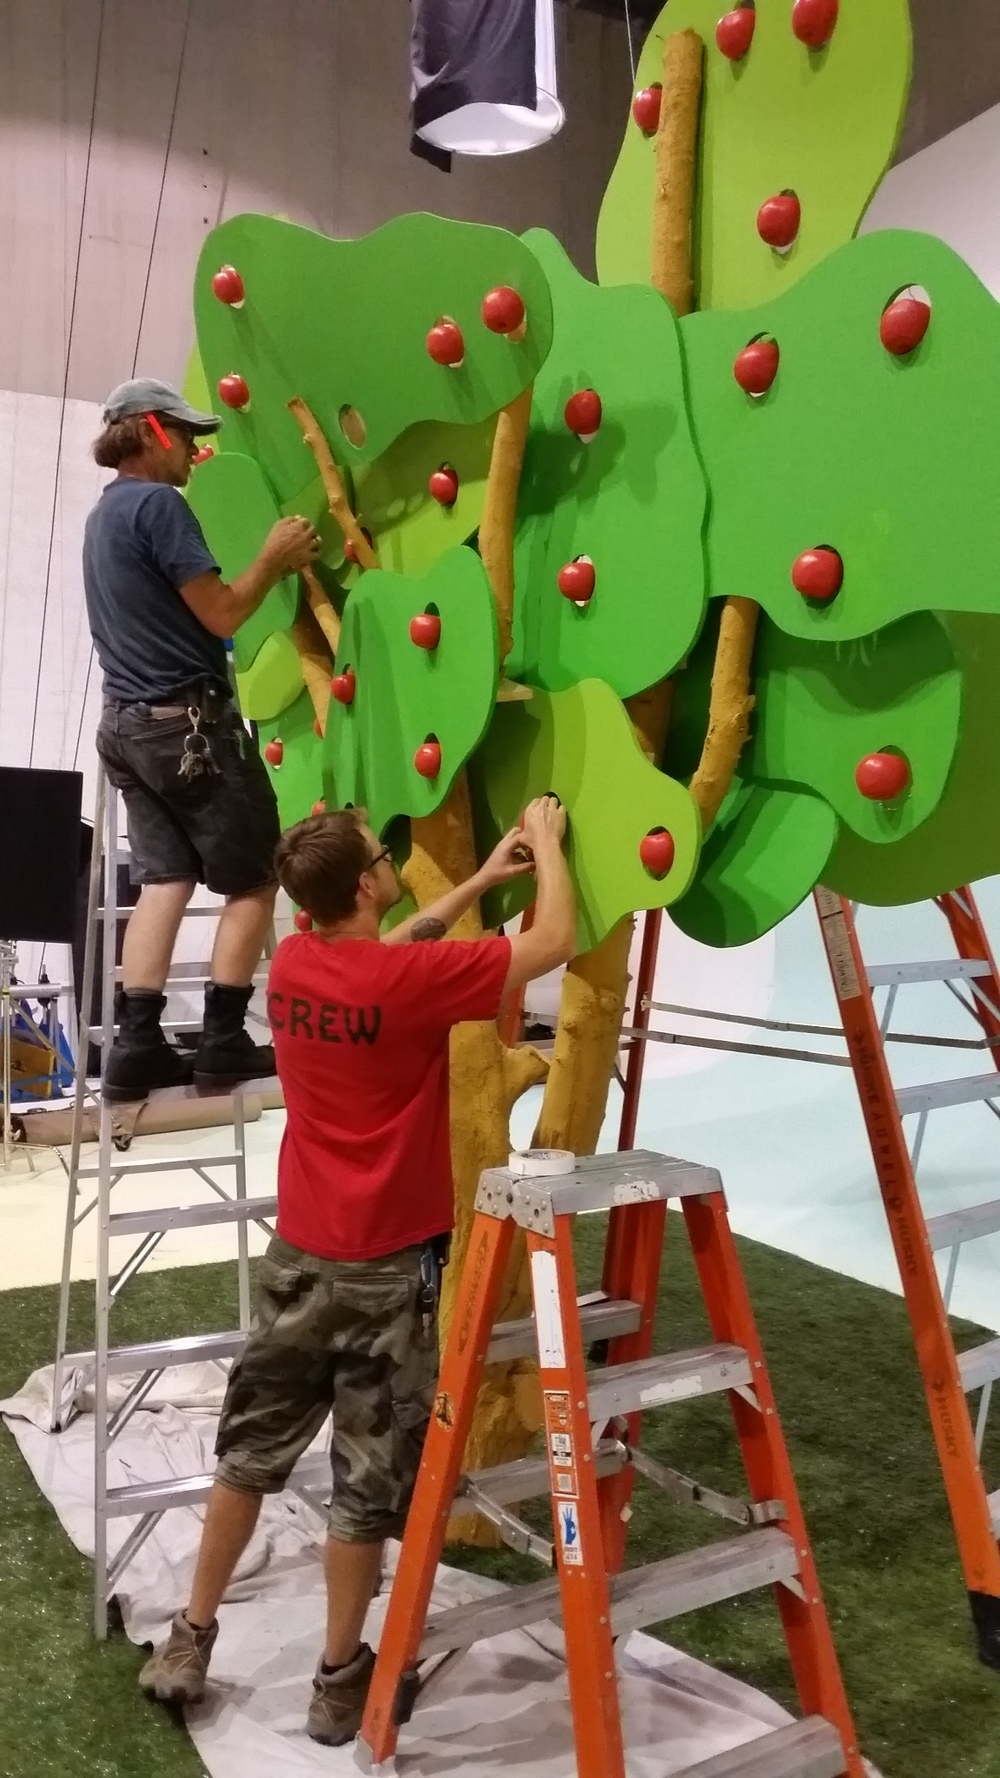 Union Set Dresser gary Surber (on ladder) works on a set piece for Health Partners with art assist tom kristjanson.